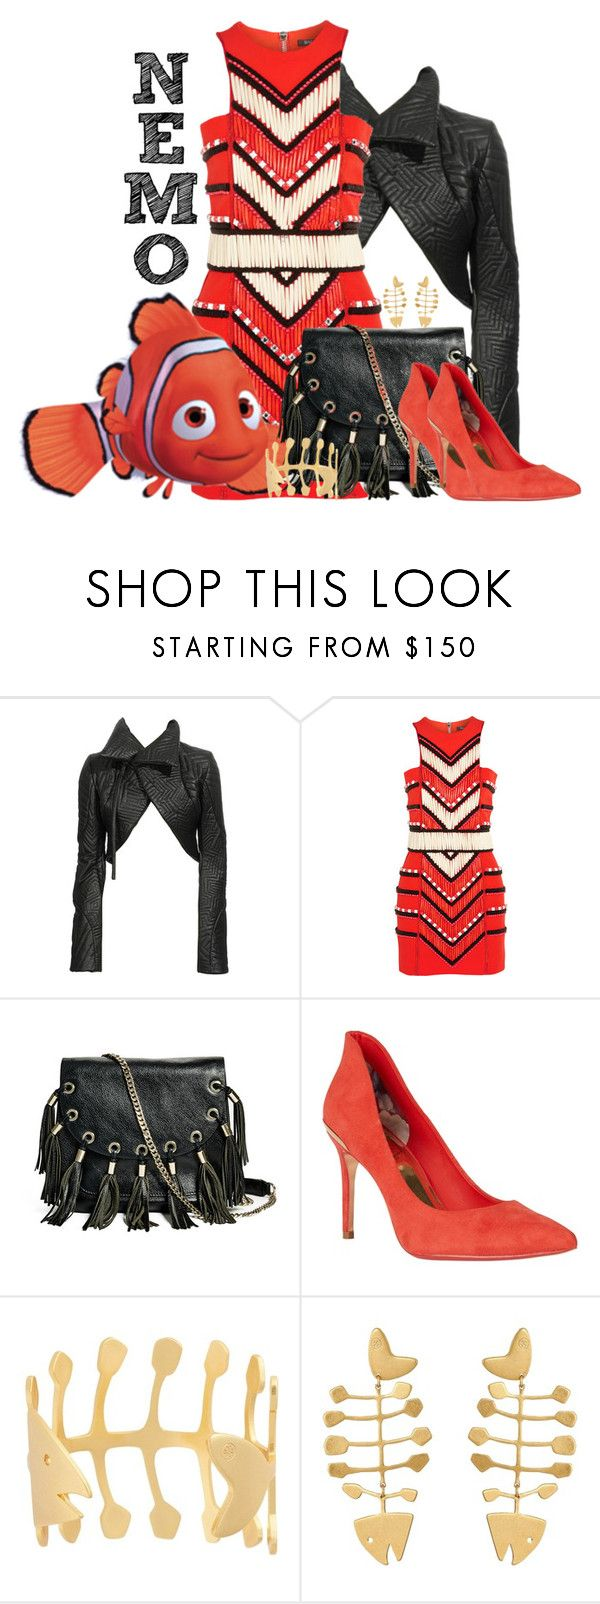 """""""Nemo"""" by janastasiagg ❤ liked on Polyvore featuring Gareth Pugh, Balmain, GUESS by Marciano, Ted Baker, Tory Burch, disney, disneybound, Nemo, findingnemo and disneyanimal"""